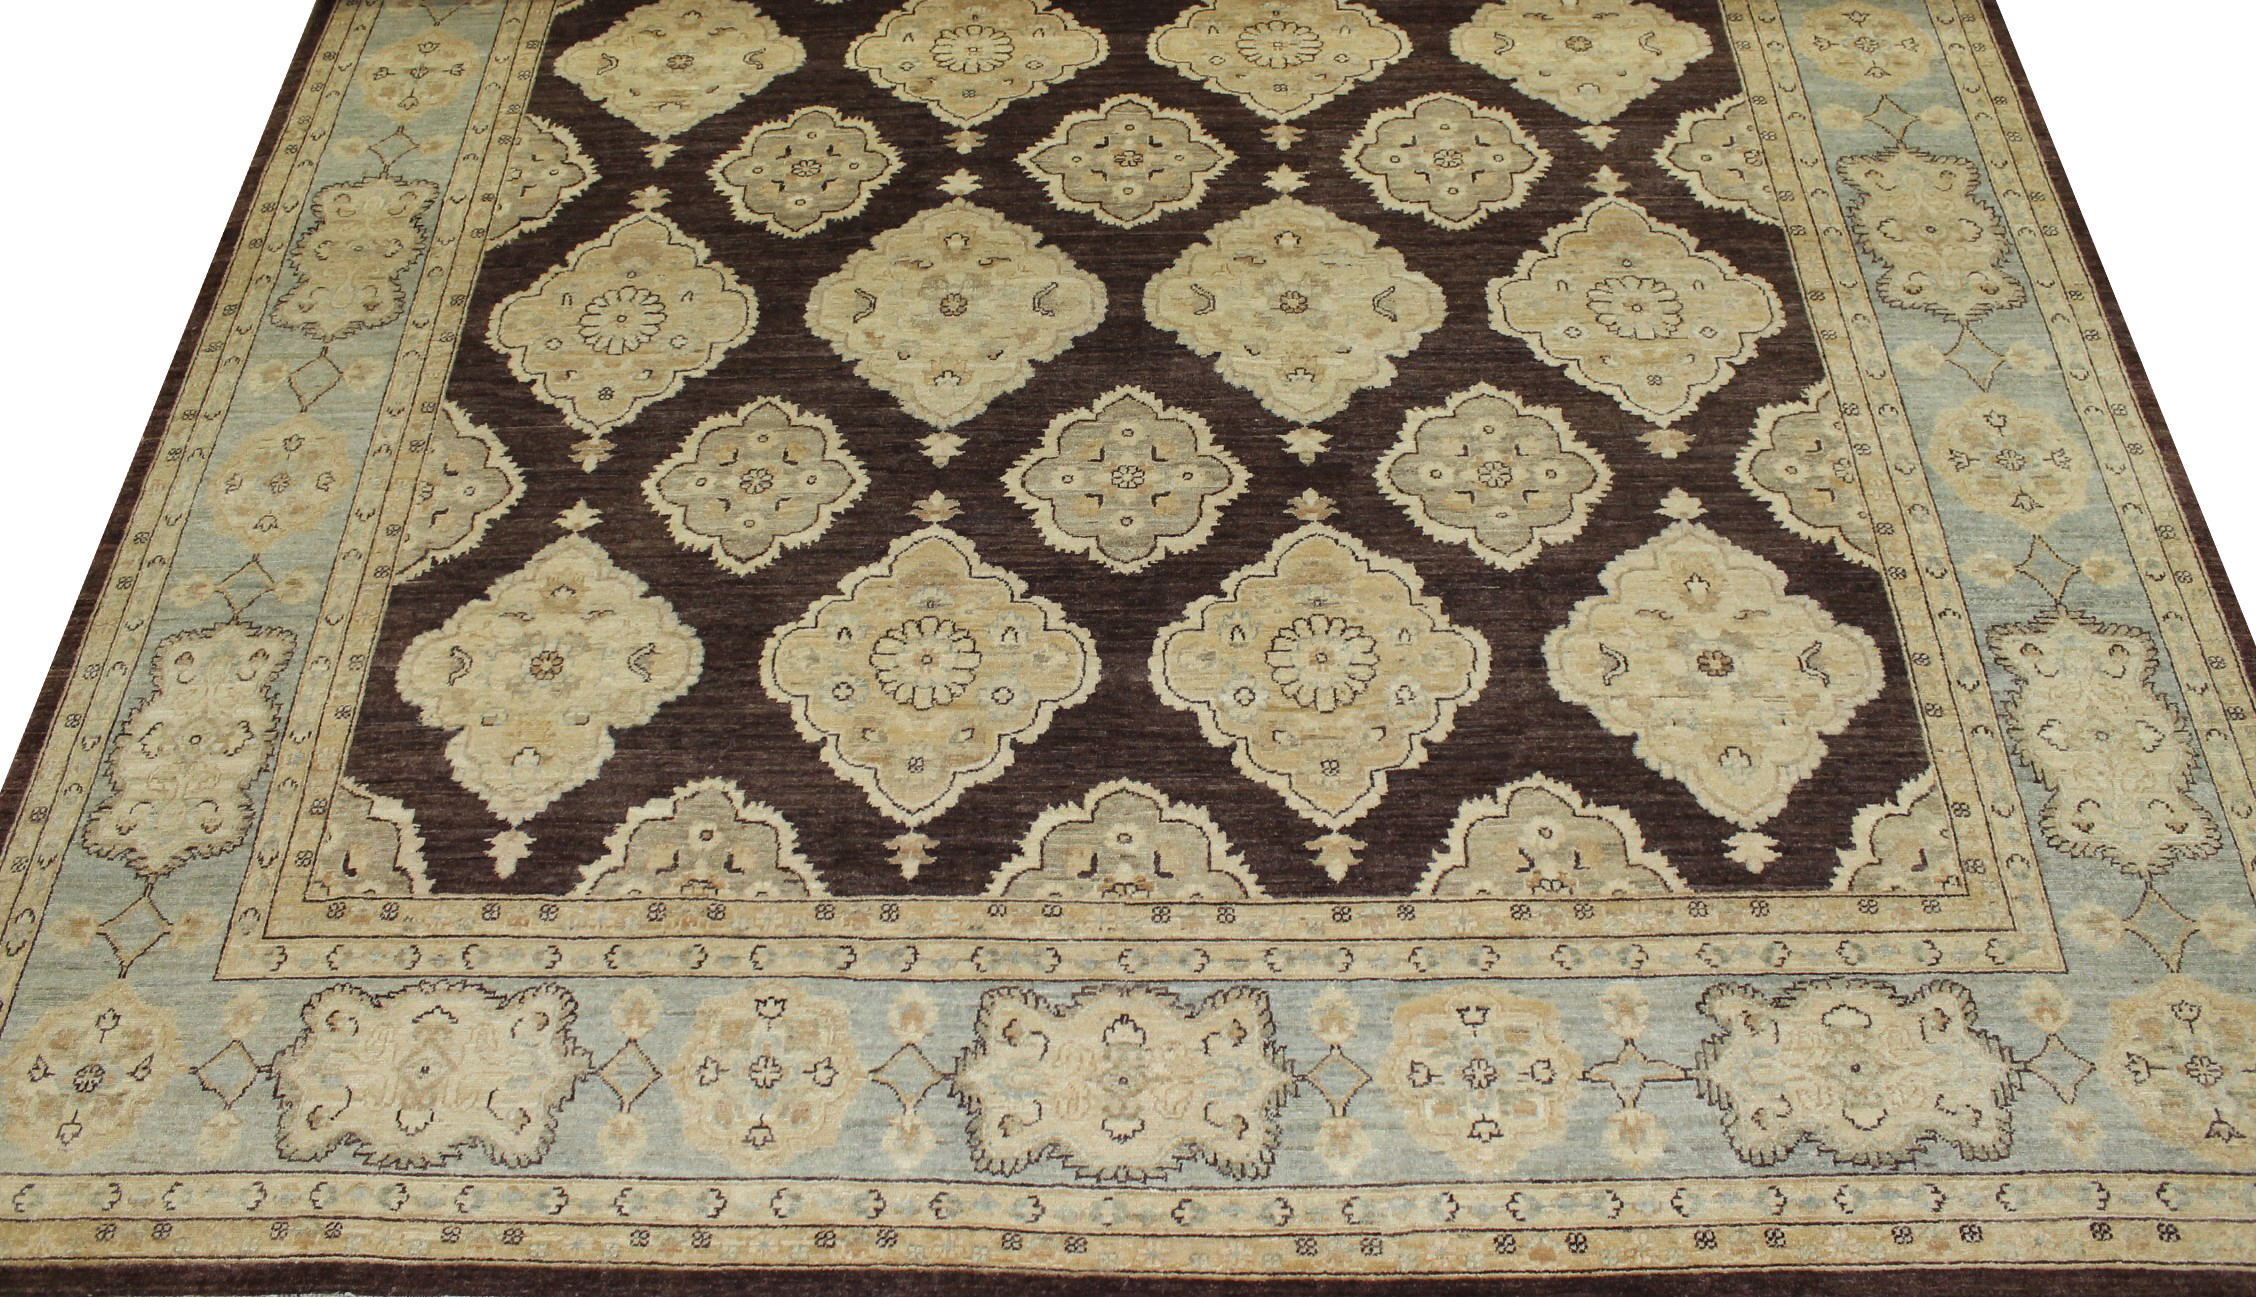 10x14 Peshawar Hand Knotted Wool Area Rug - MR14377